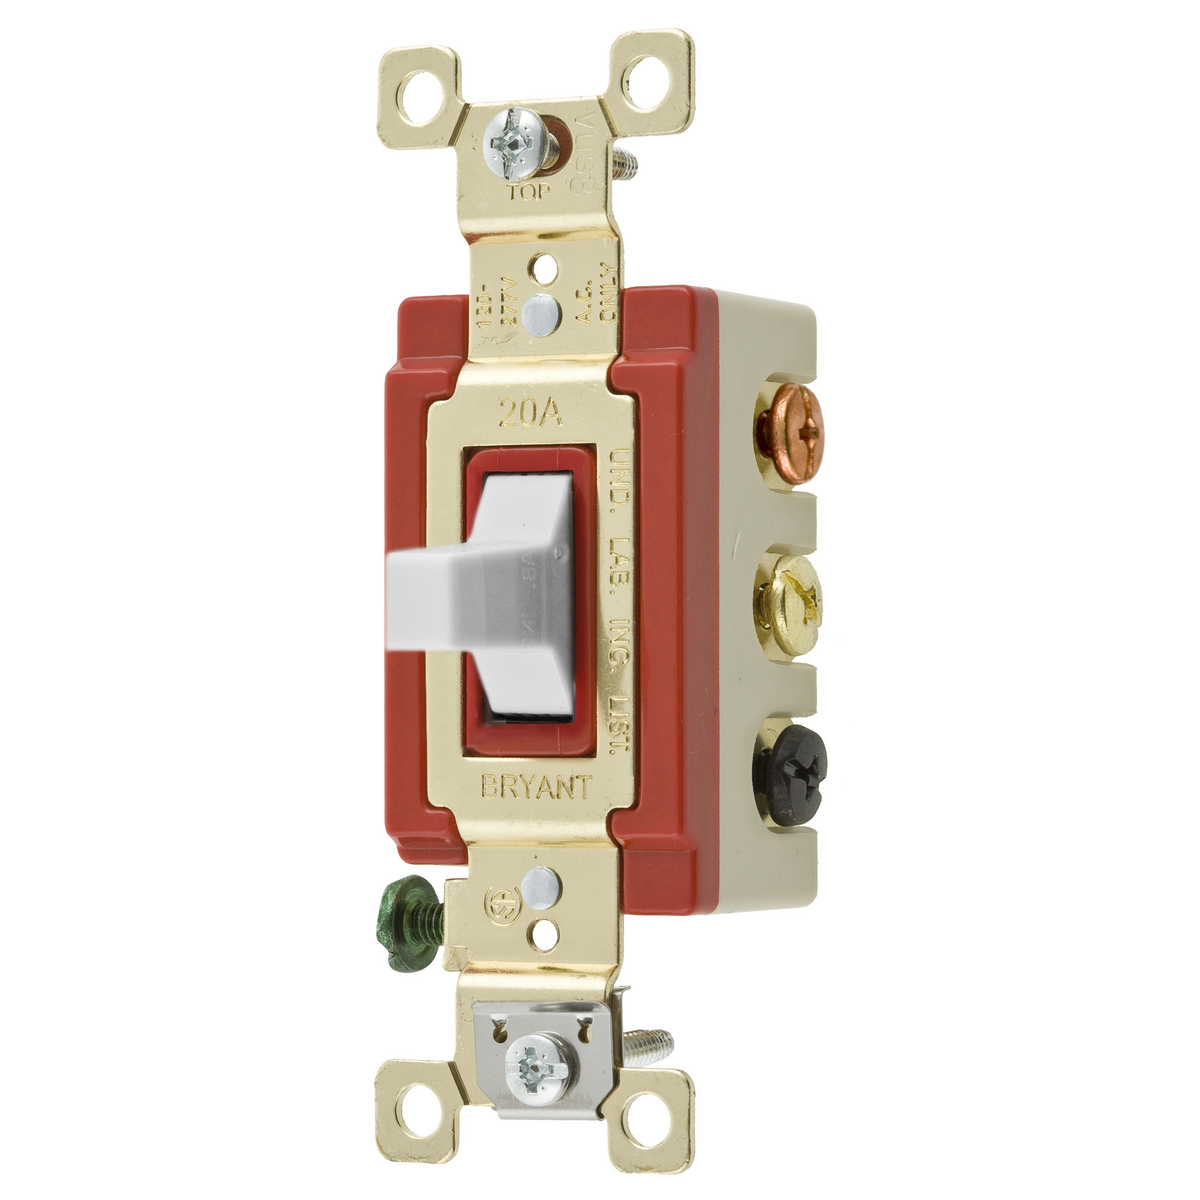 Hubbell Series 1200 20a Red Toggle Switch for sale online